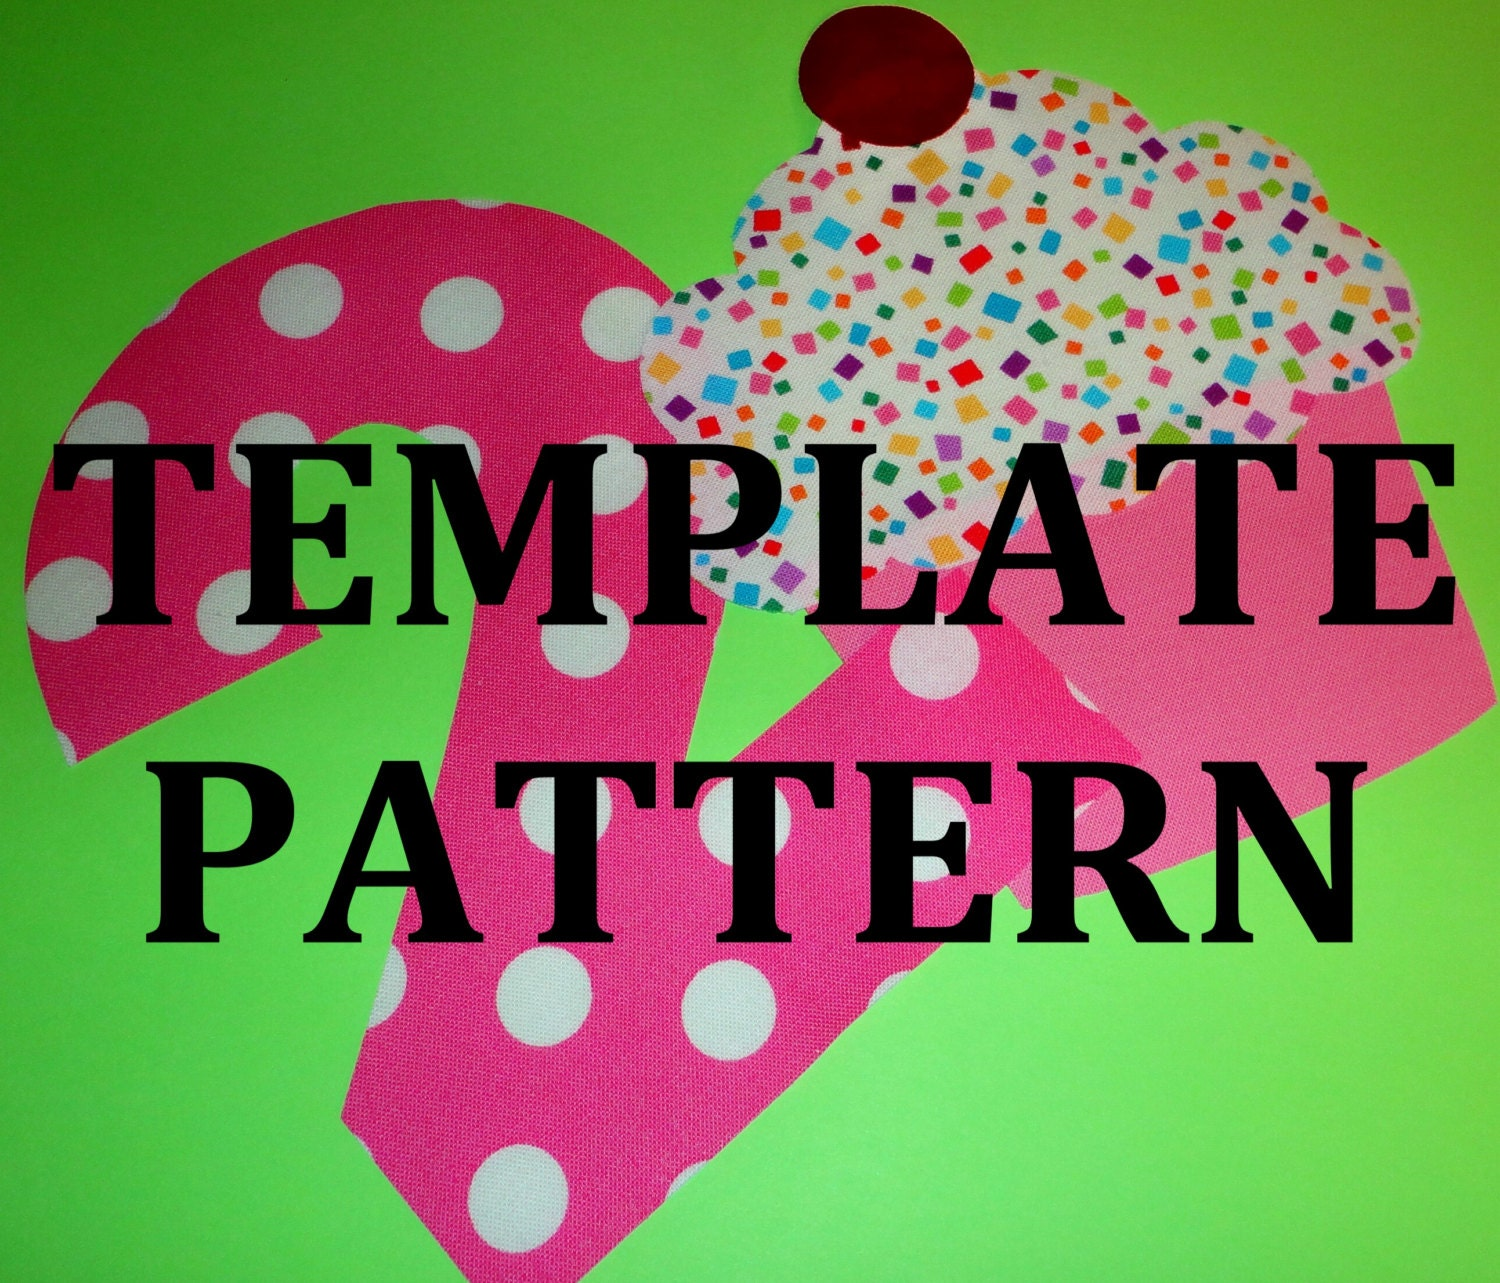 Cupcake Applique Pattern, PDF Template, Applique Designs